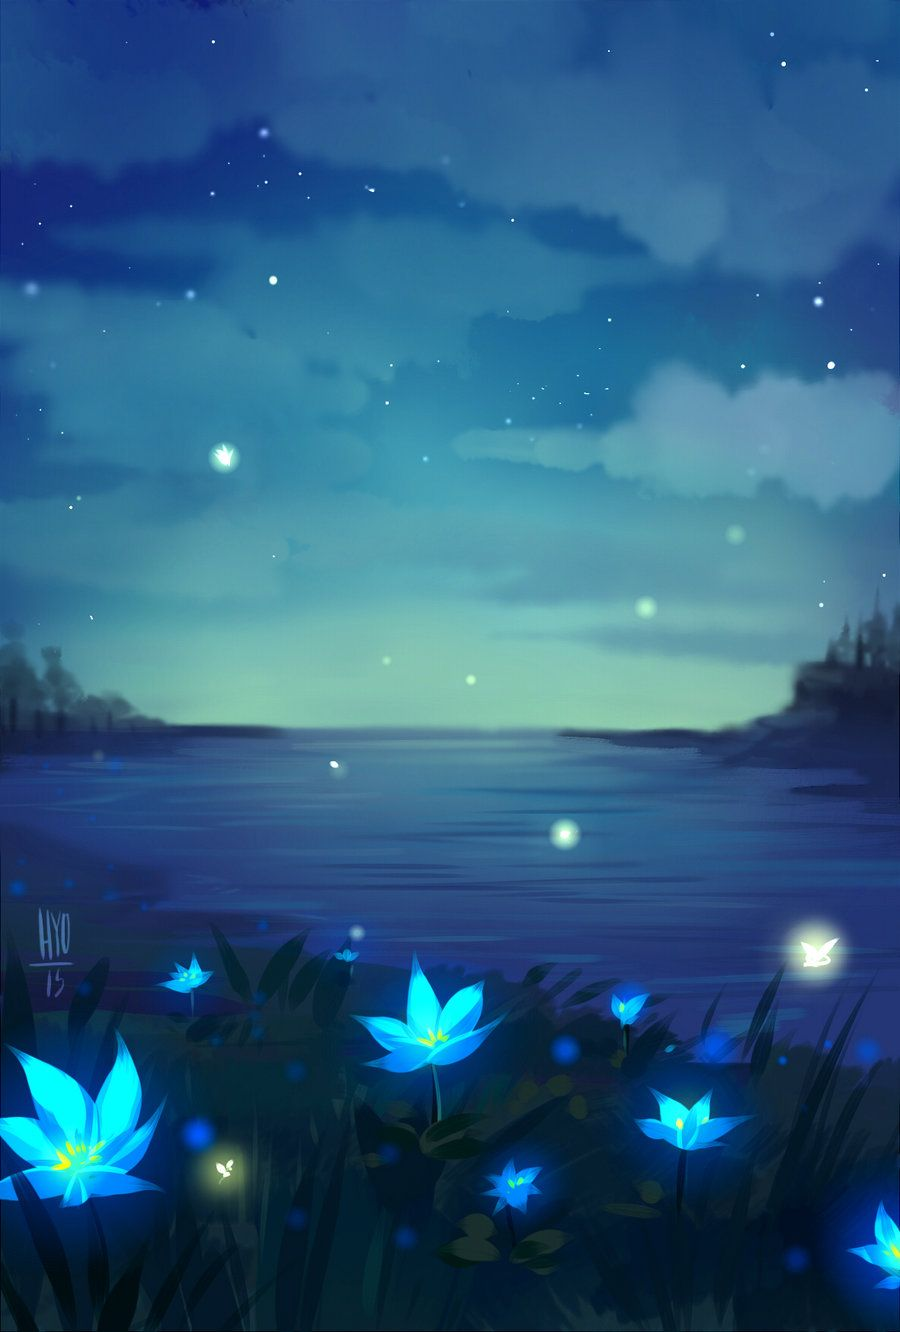 There Are Blue Flowers On The Shore Beautiful Wallpapers Backgrounds Scenery Wallpaper Fantasy Art Landscapes Coolest anime flower wallpaper